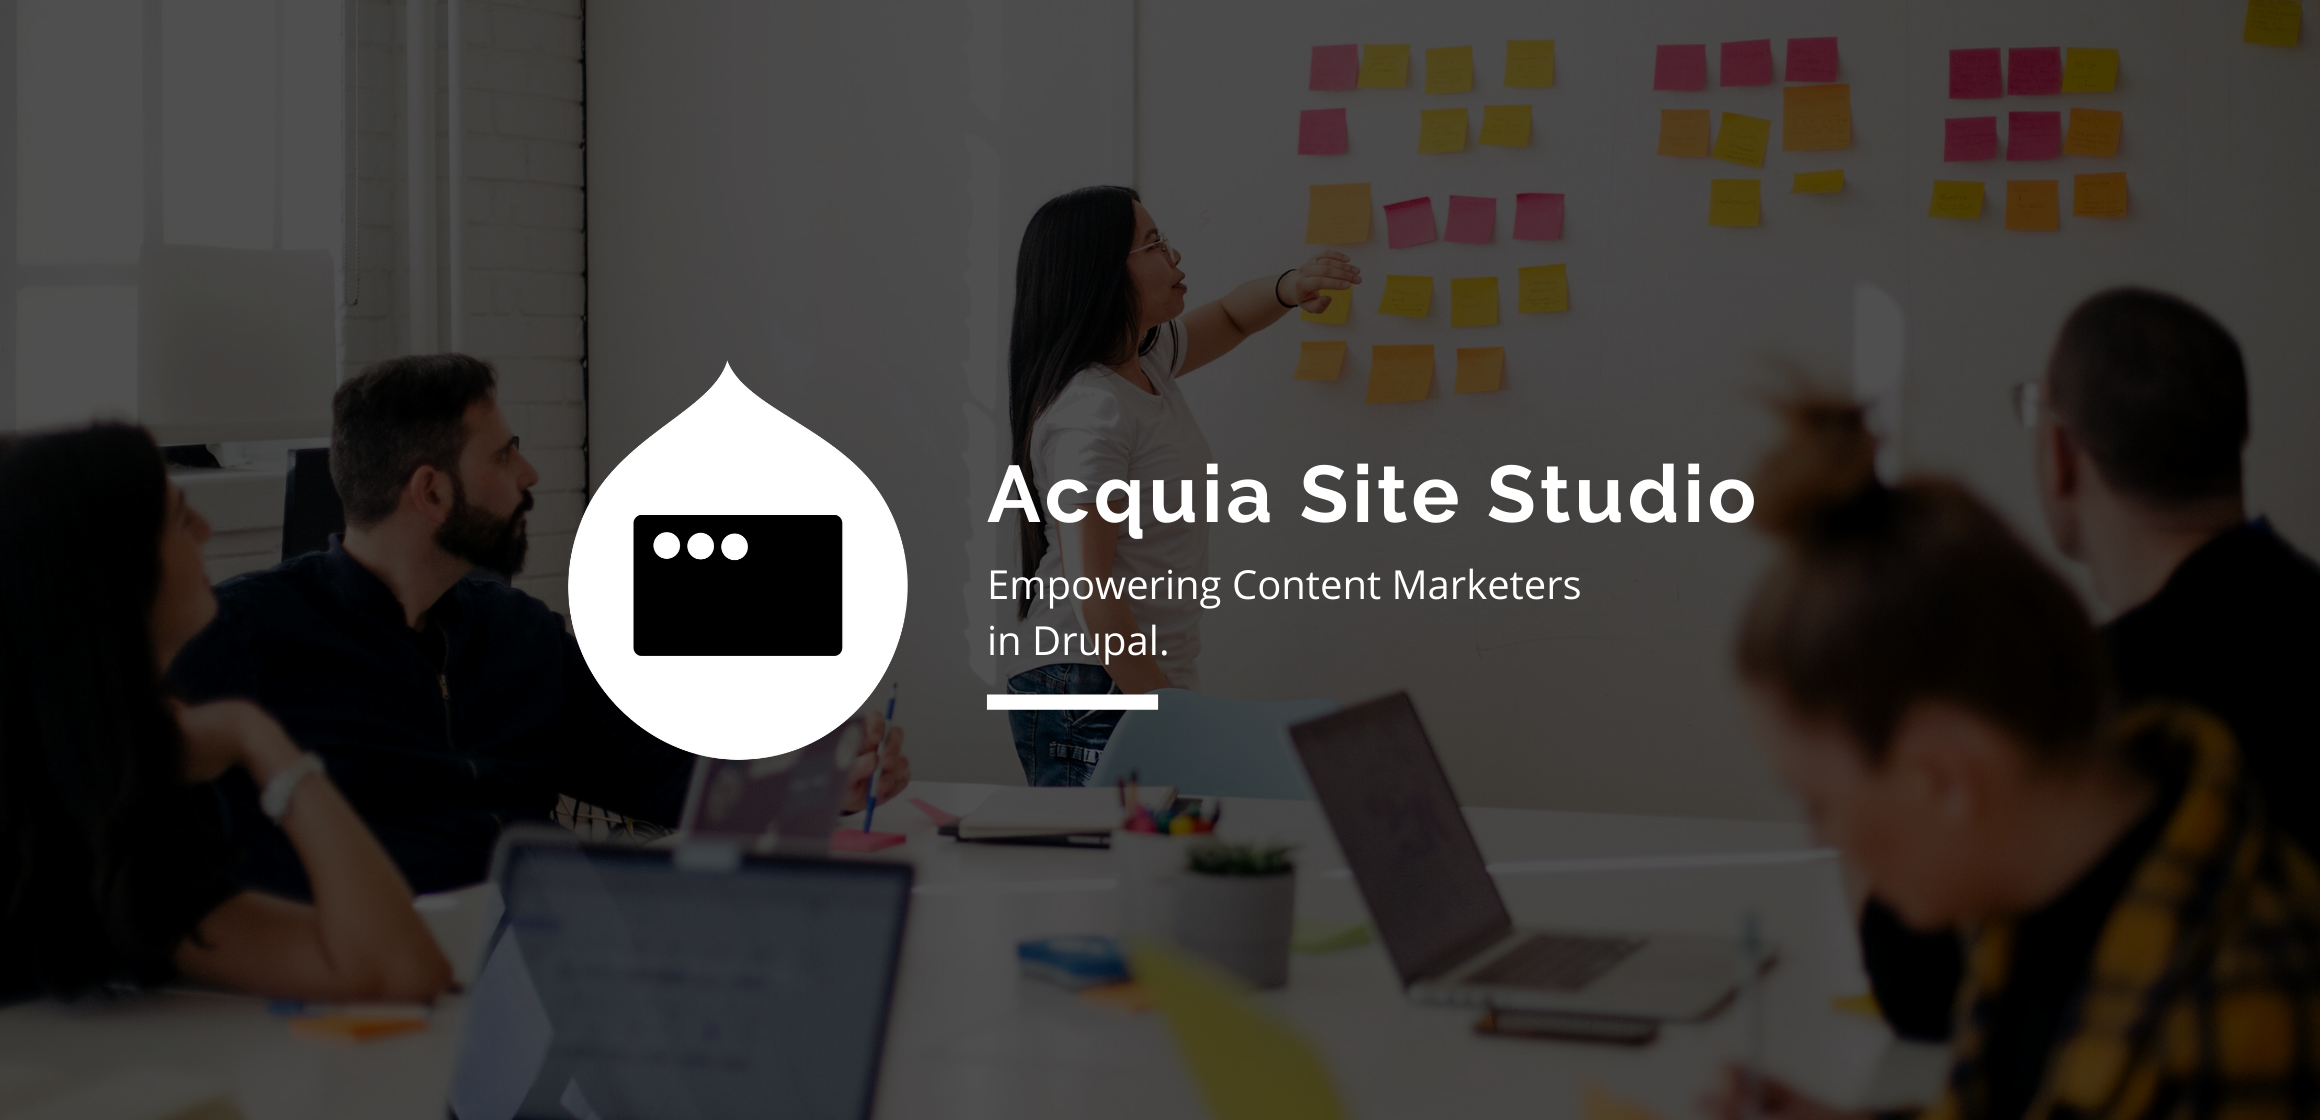 Acquia Site Studio -  A new friend of Content Marketers in Drupal